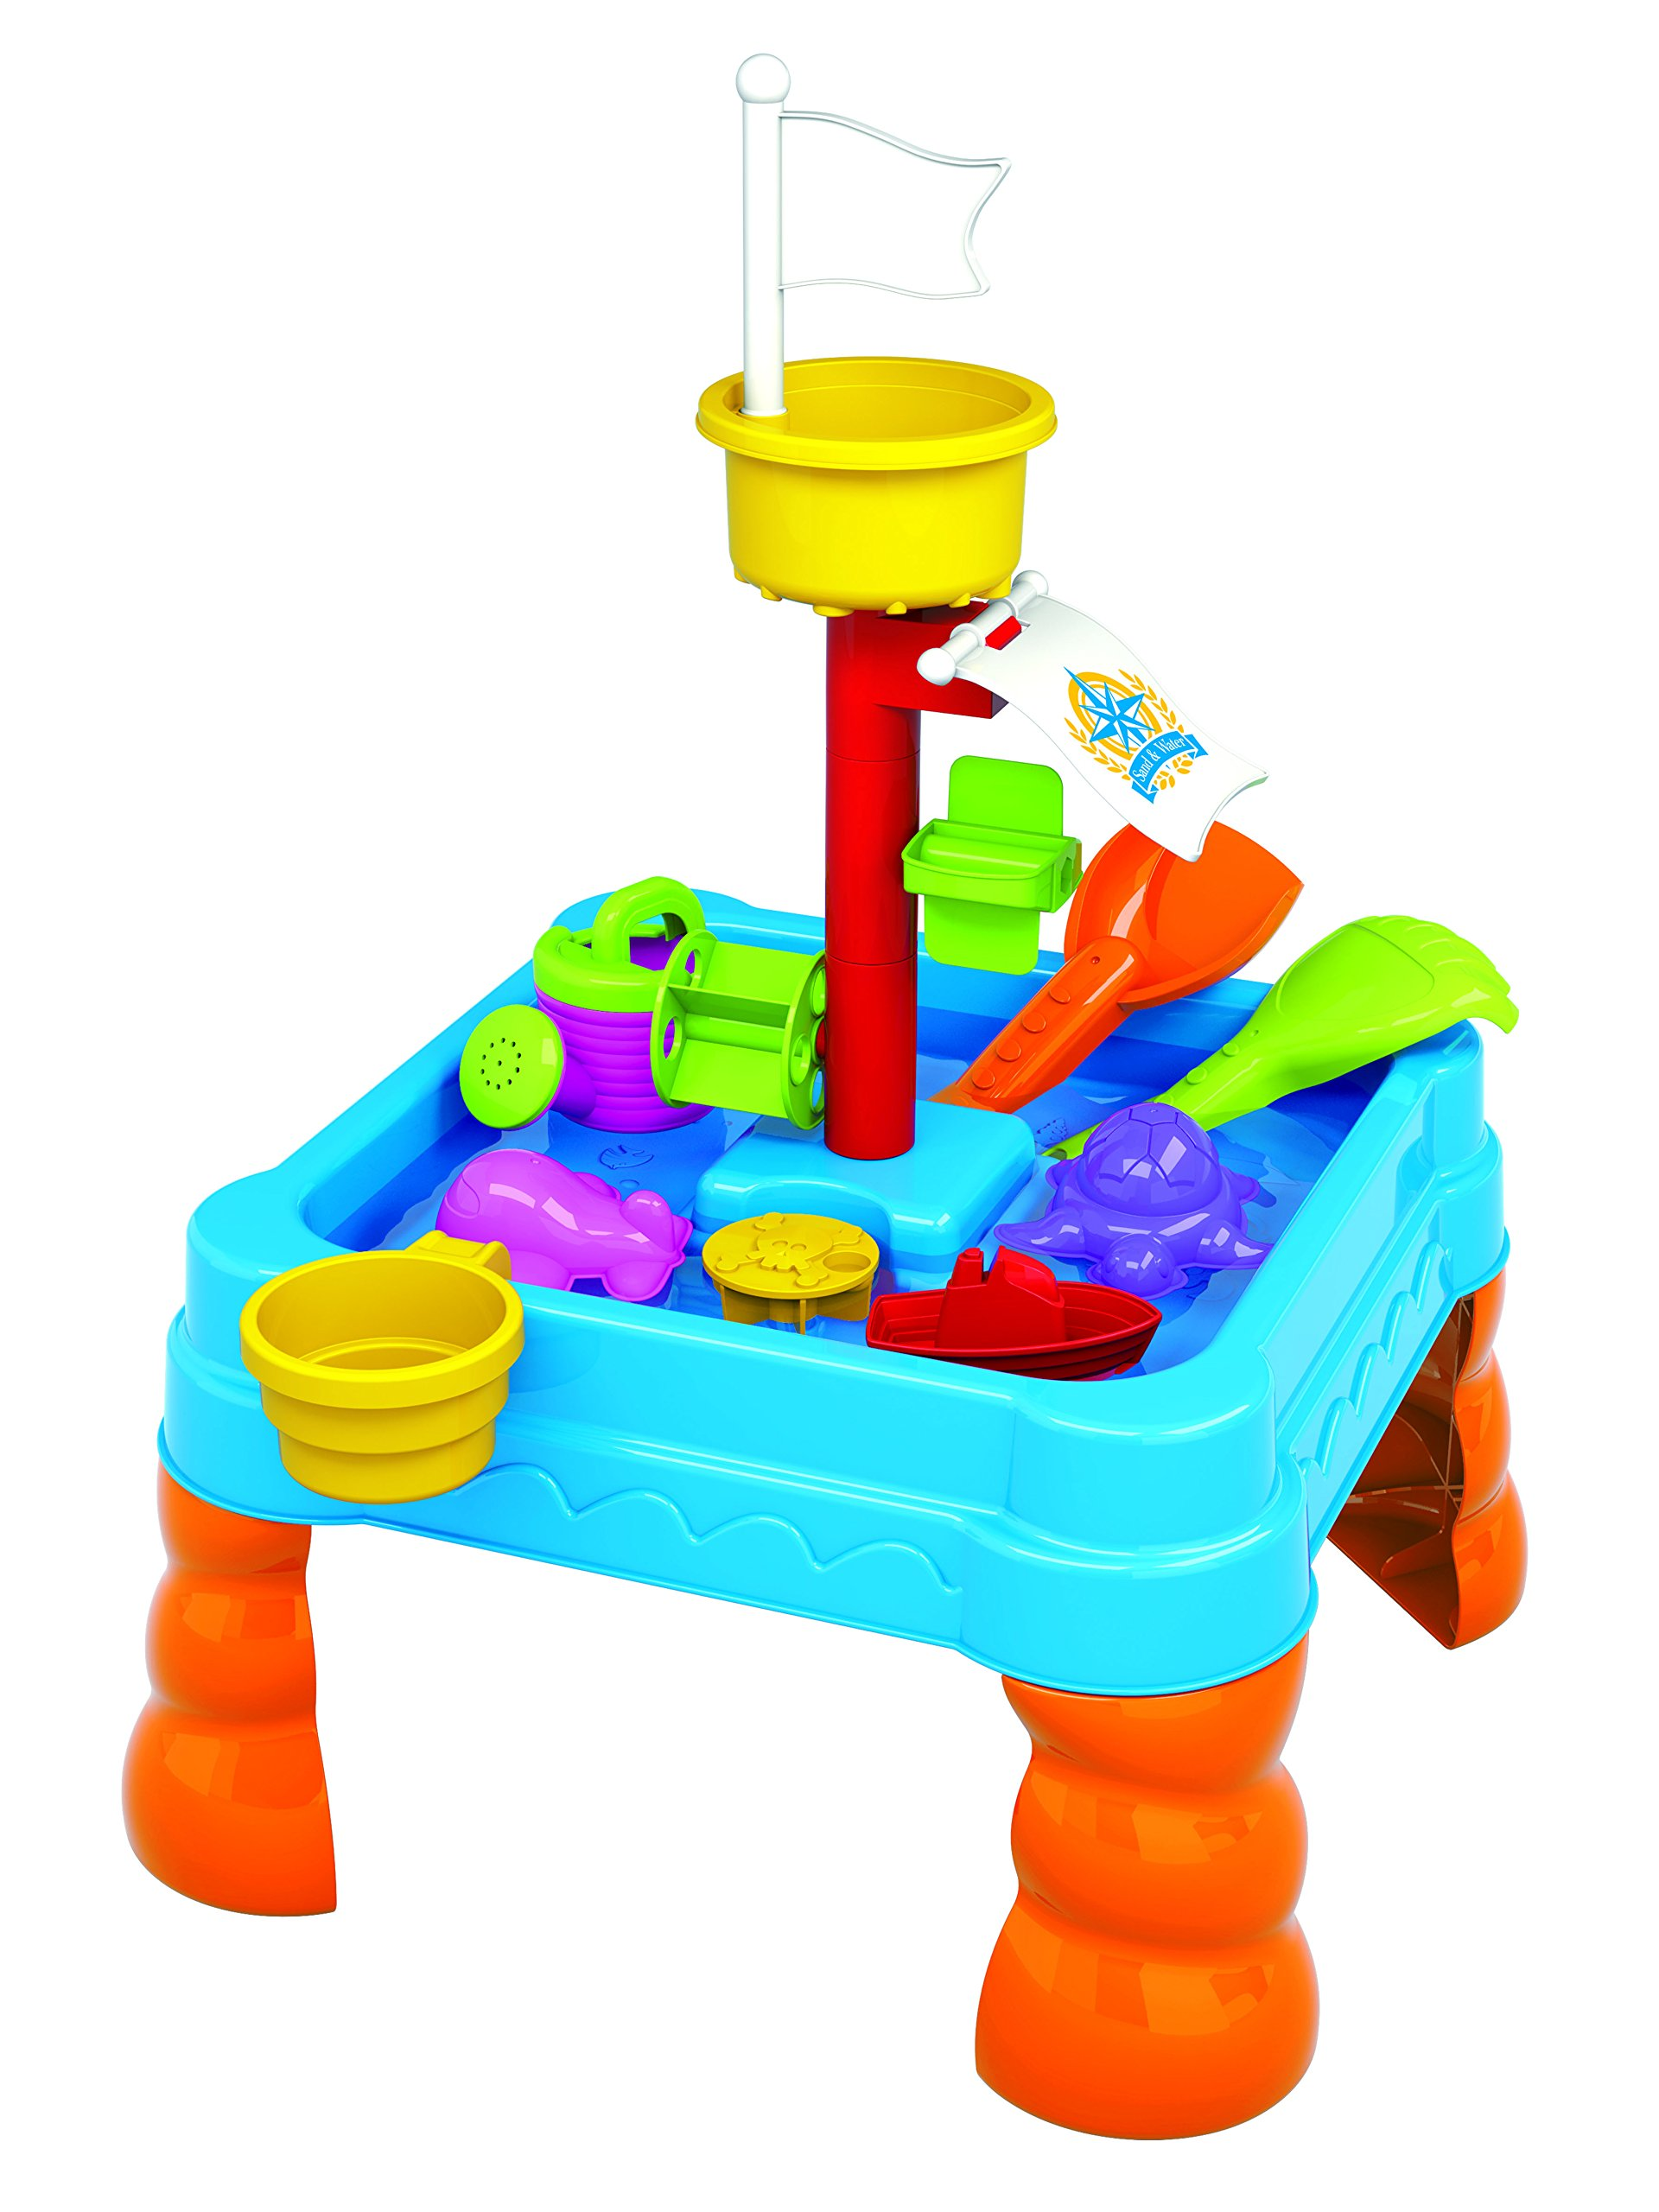 Kids Sand and Water Table - Toddler Bubble Splash Water Table - Splash and Scoop Kids Table – Detachable Legs – Beach Tools and Water Cans